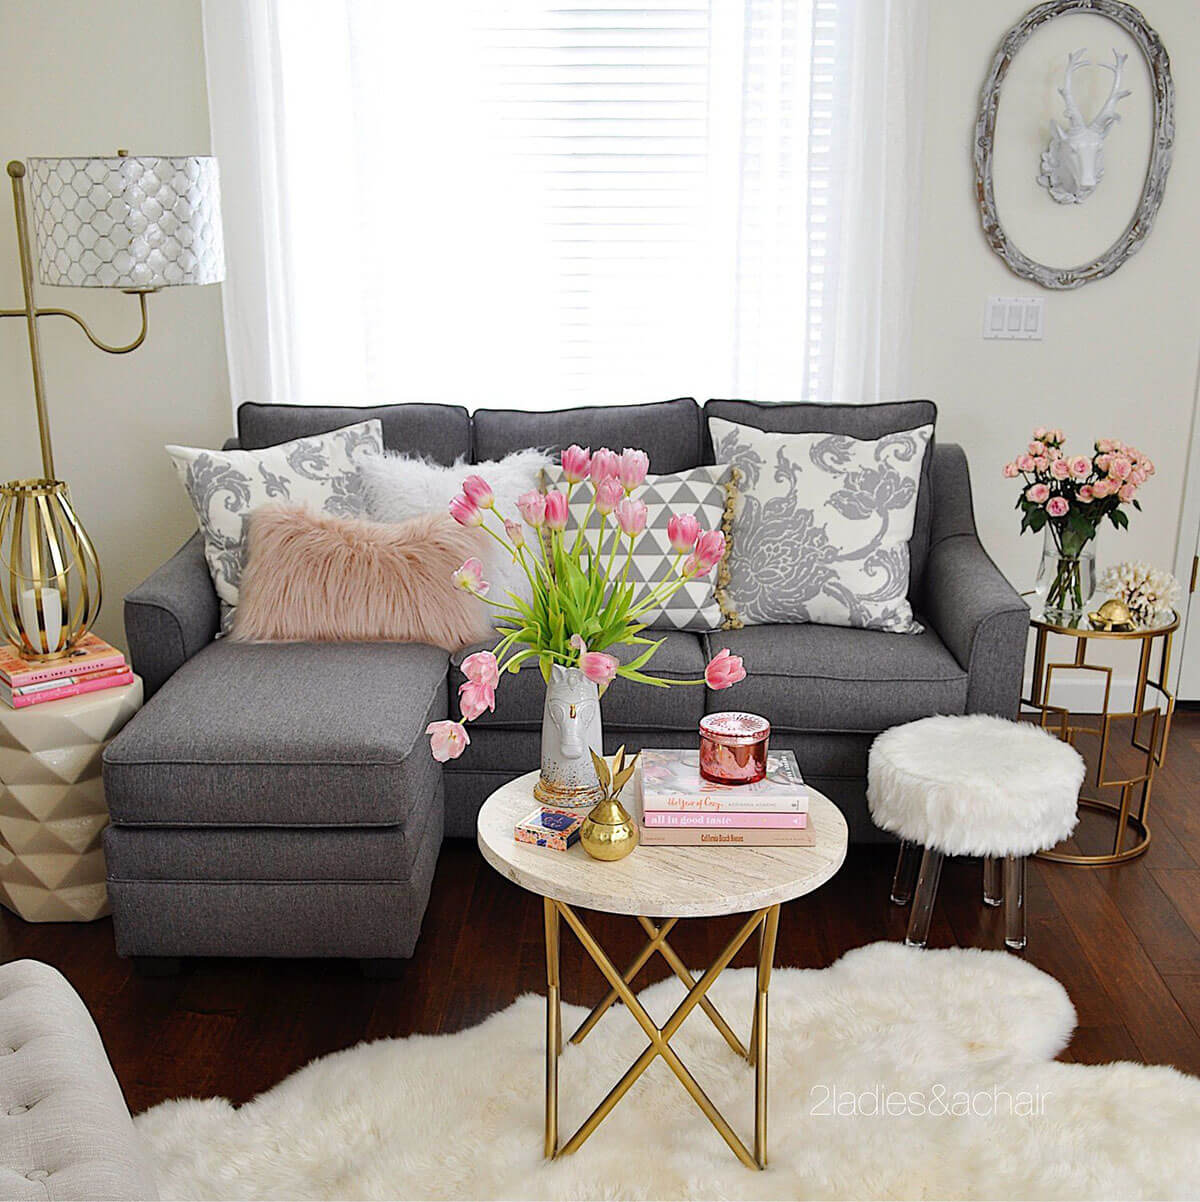 Decorating Idea Living Room: 25+ Best Small Living Room Decor And Design Ideas For 2019